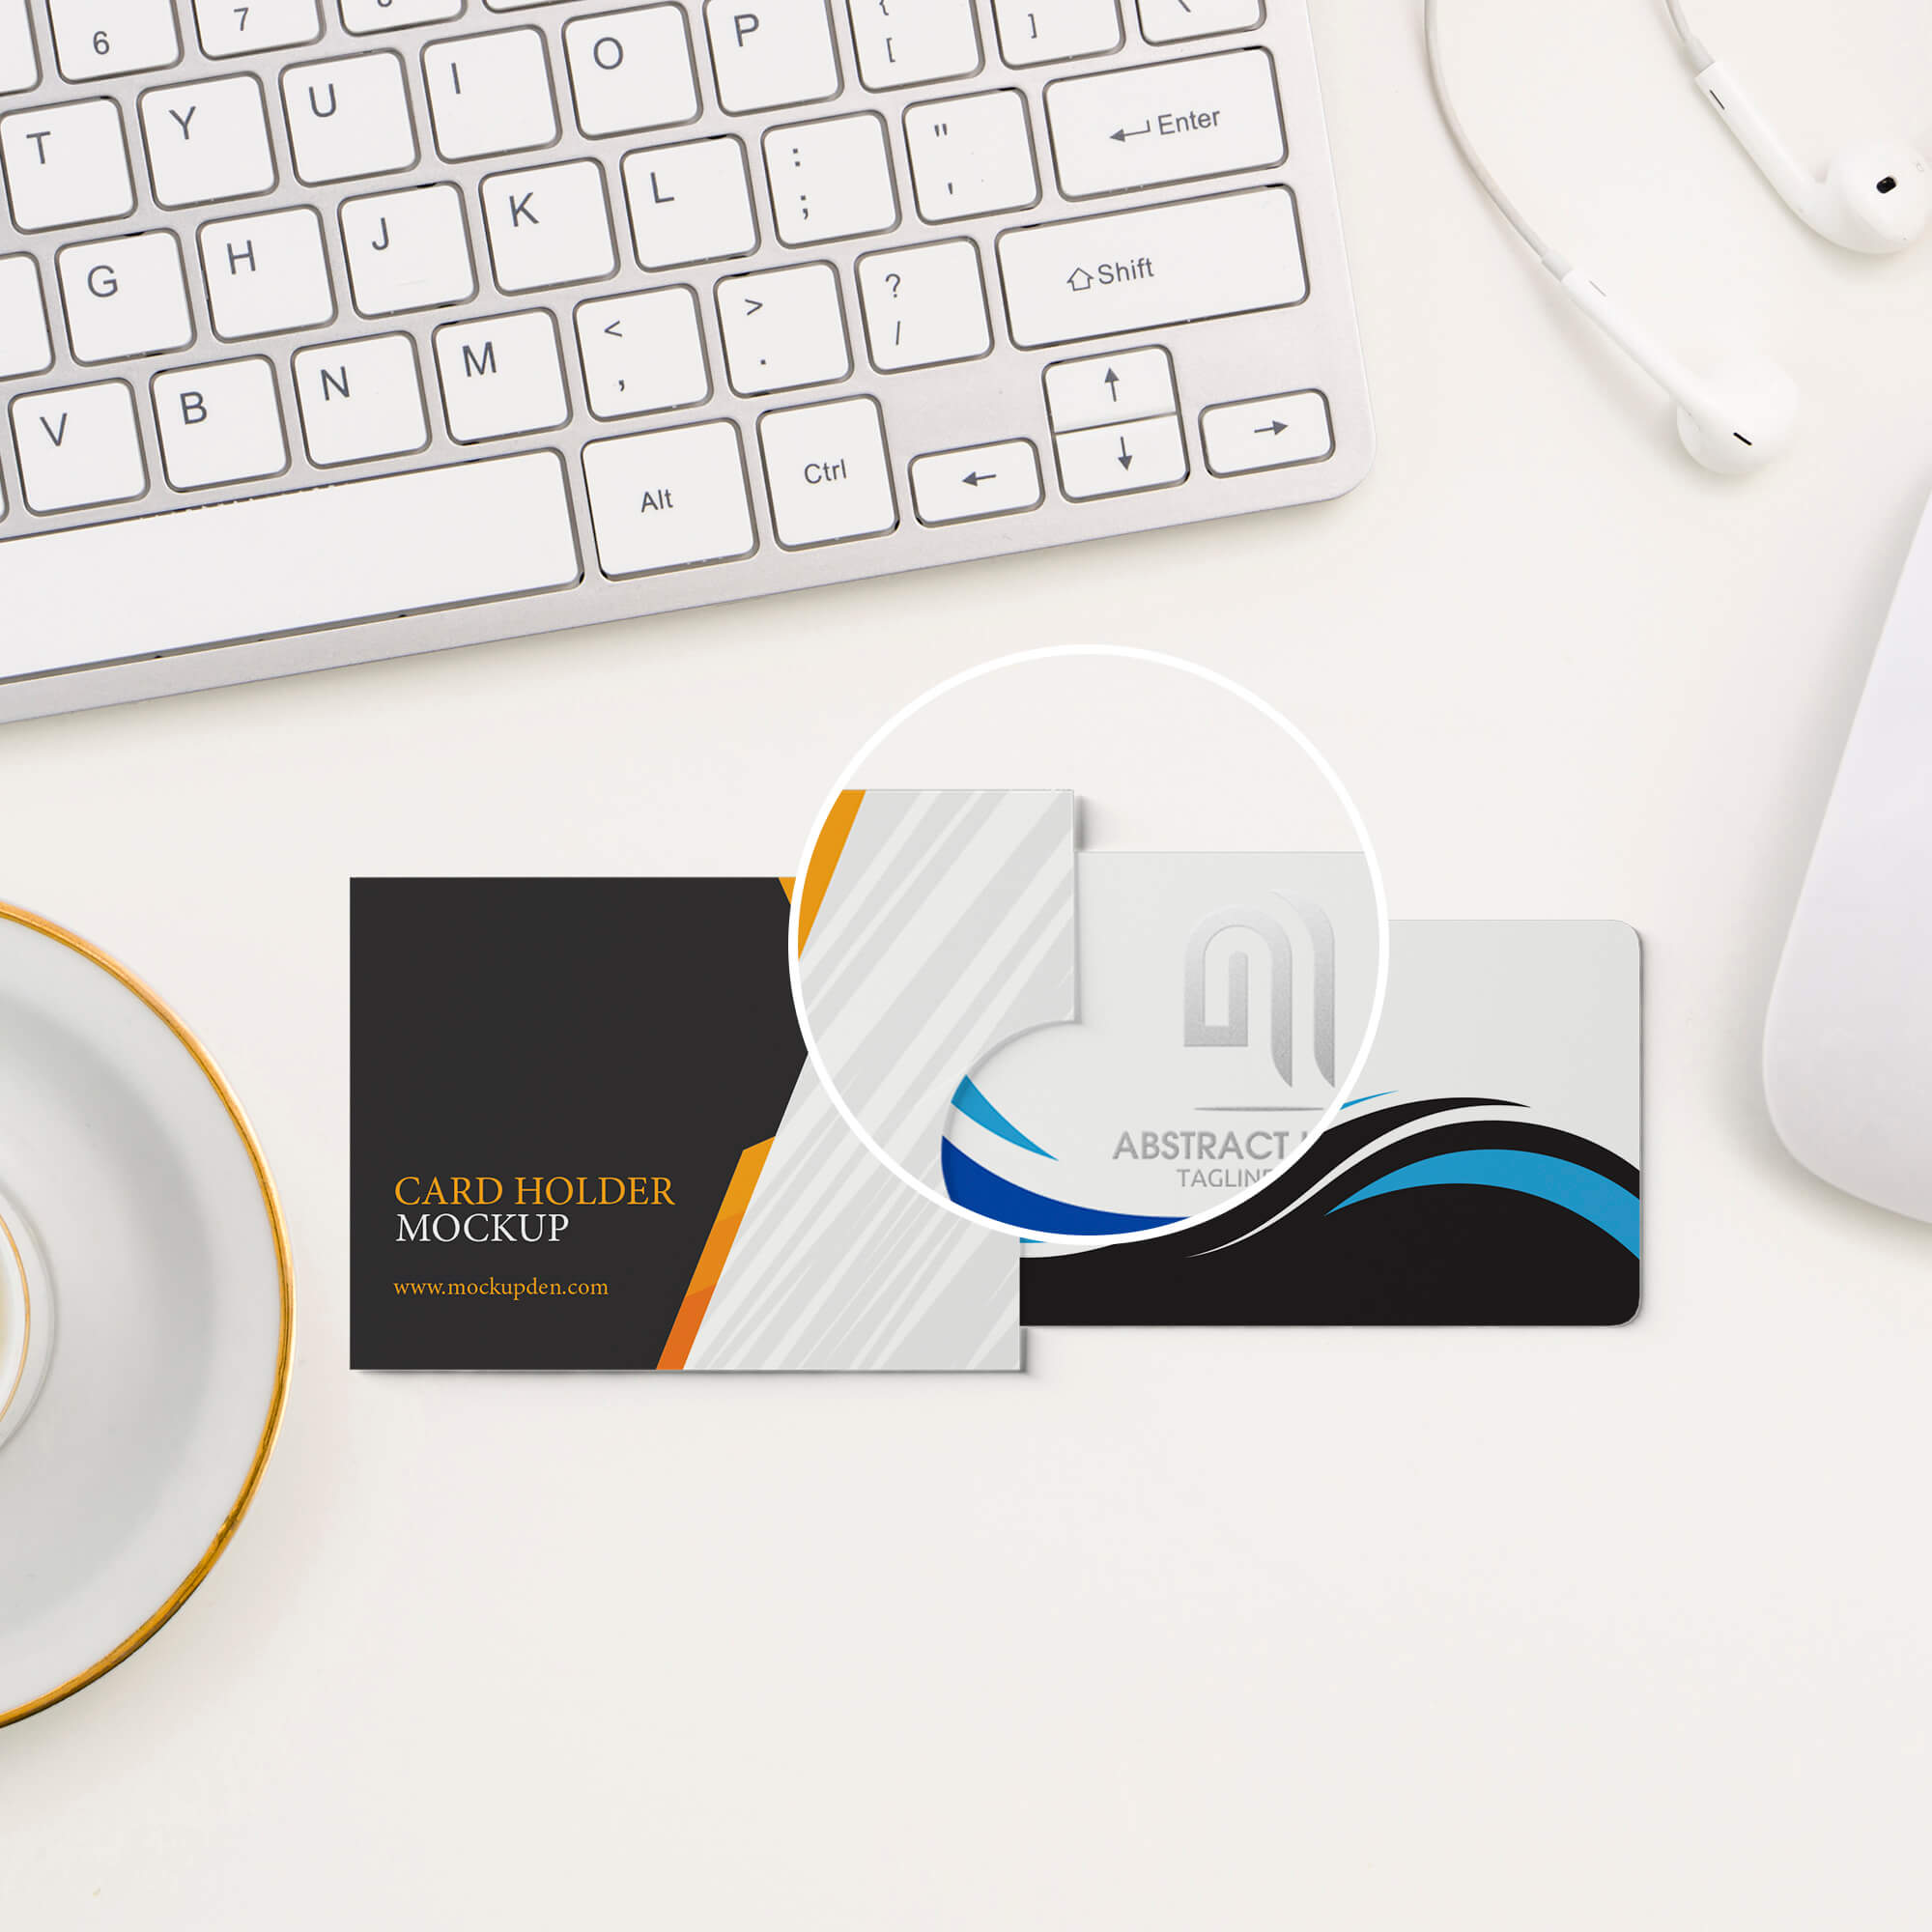 Close Up Of a Free Card Holder Mockup PSD Template